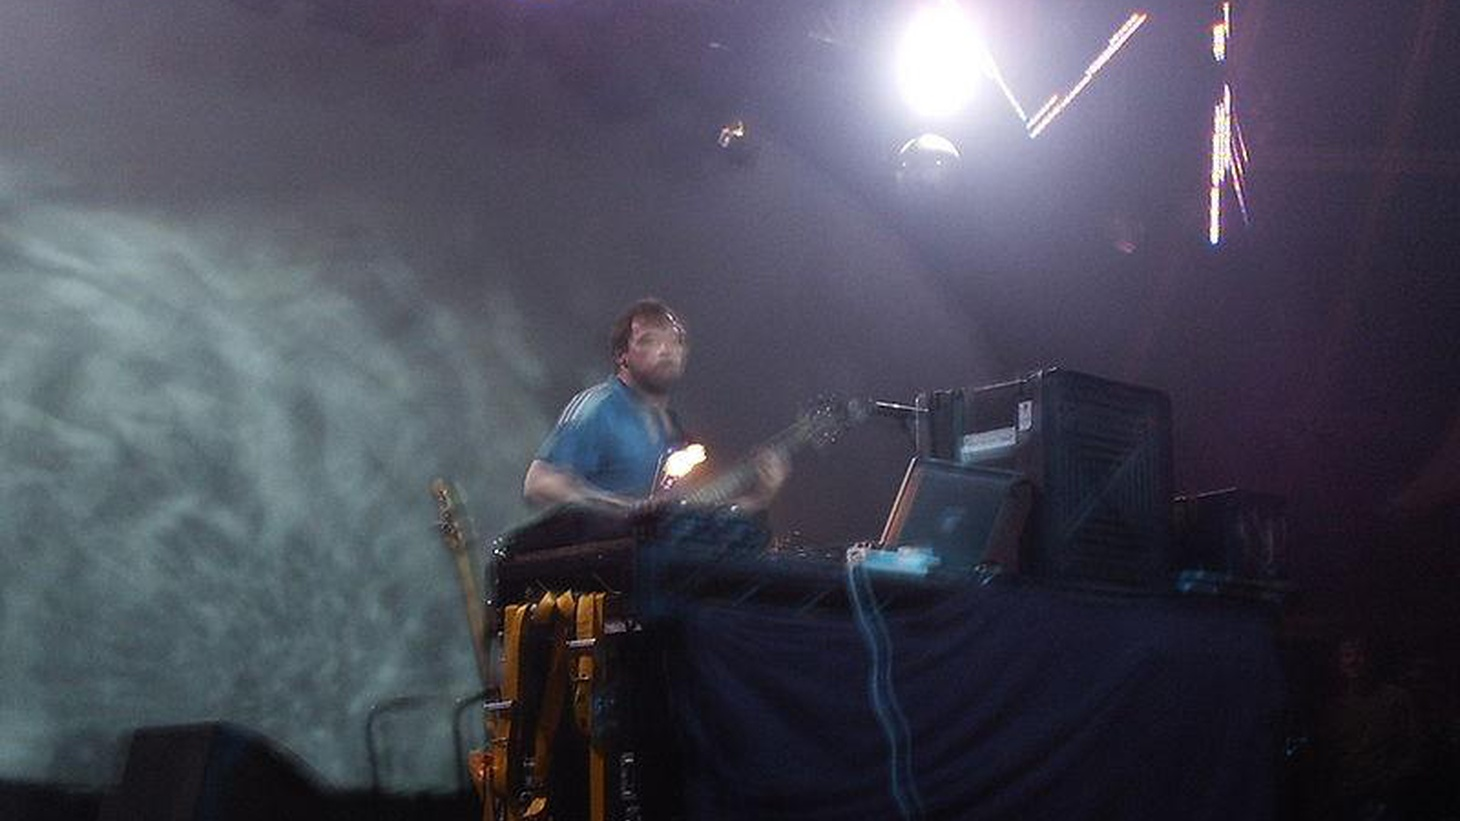 Avant garde electronica pioneer Squarepusher pushes the boundaries of music, exploring drum and bass and industrial sounds.